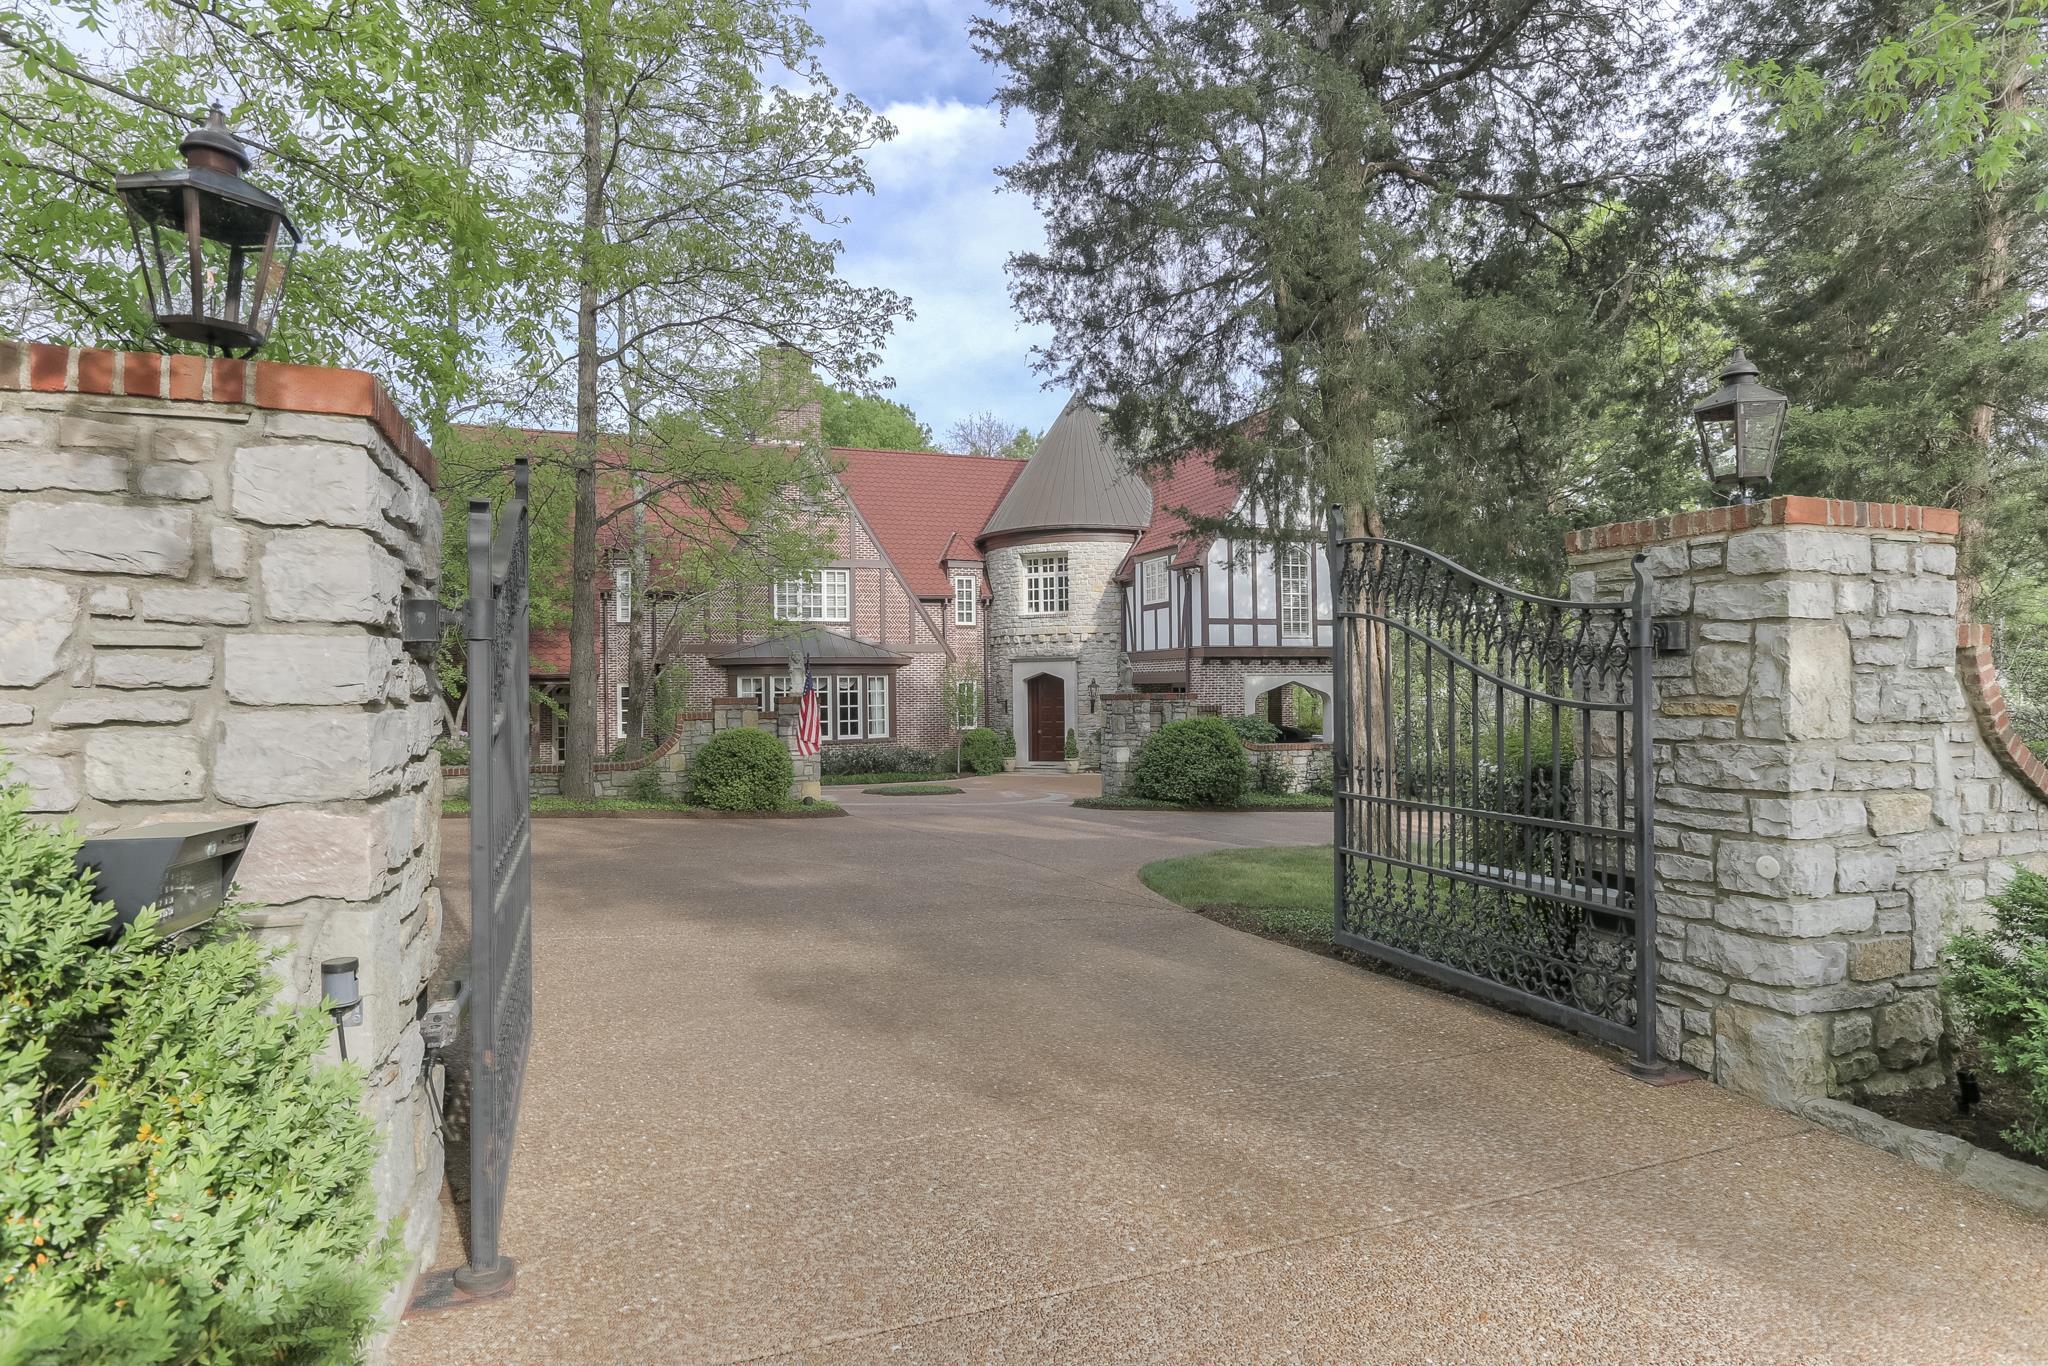 Truly beautiful English Tudor on coveted lot & street in Belle Meade. Fabulous design & quality with architectural details including grand rooms, impressive trim work & built-ins. Granite, stone & hardwood floors throughout. Space for elevator. Media room has wiring to be a recording studio. Geothermal heat/air. Act quickly, this home is special!